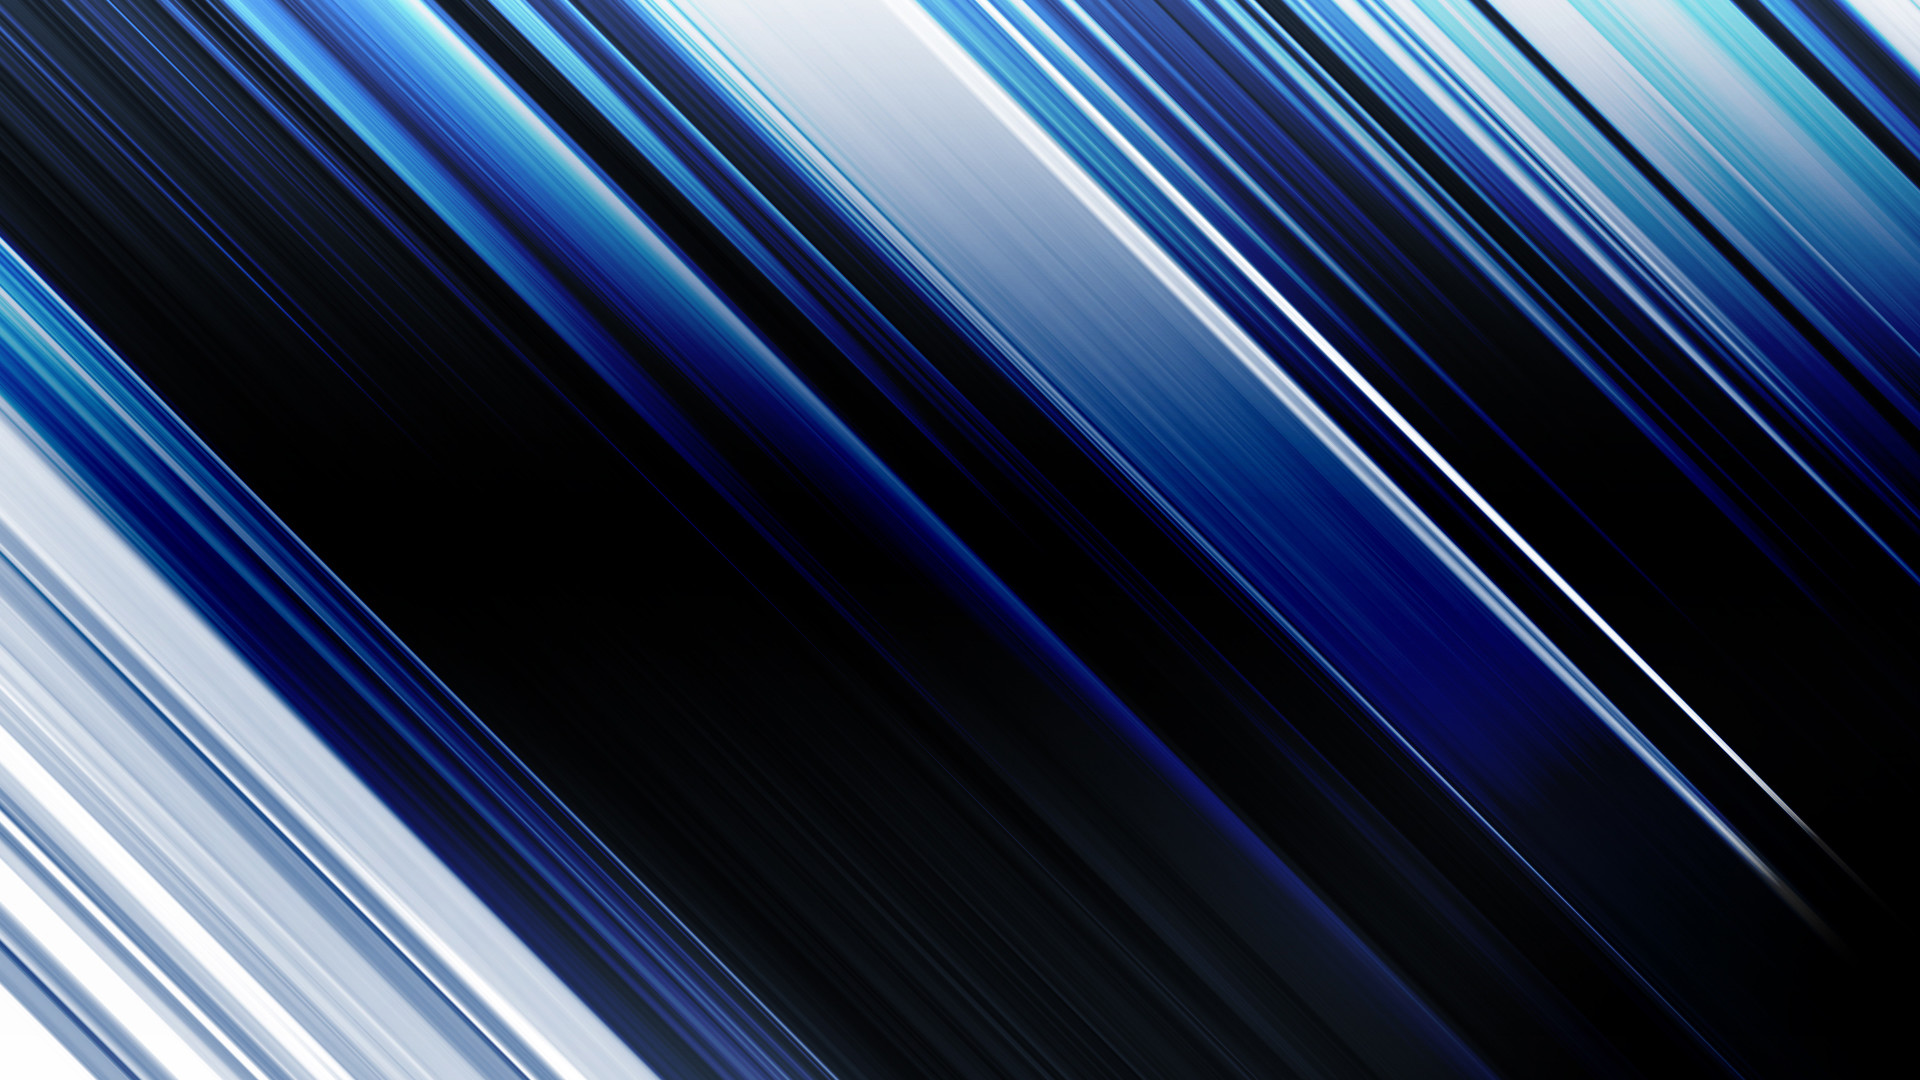 blue abstract wallpaper for